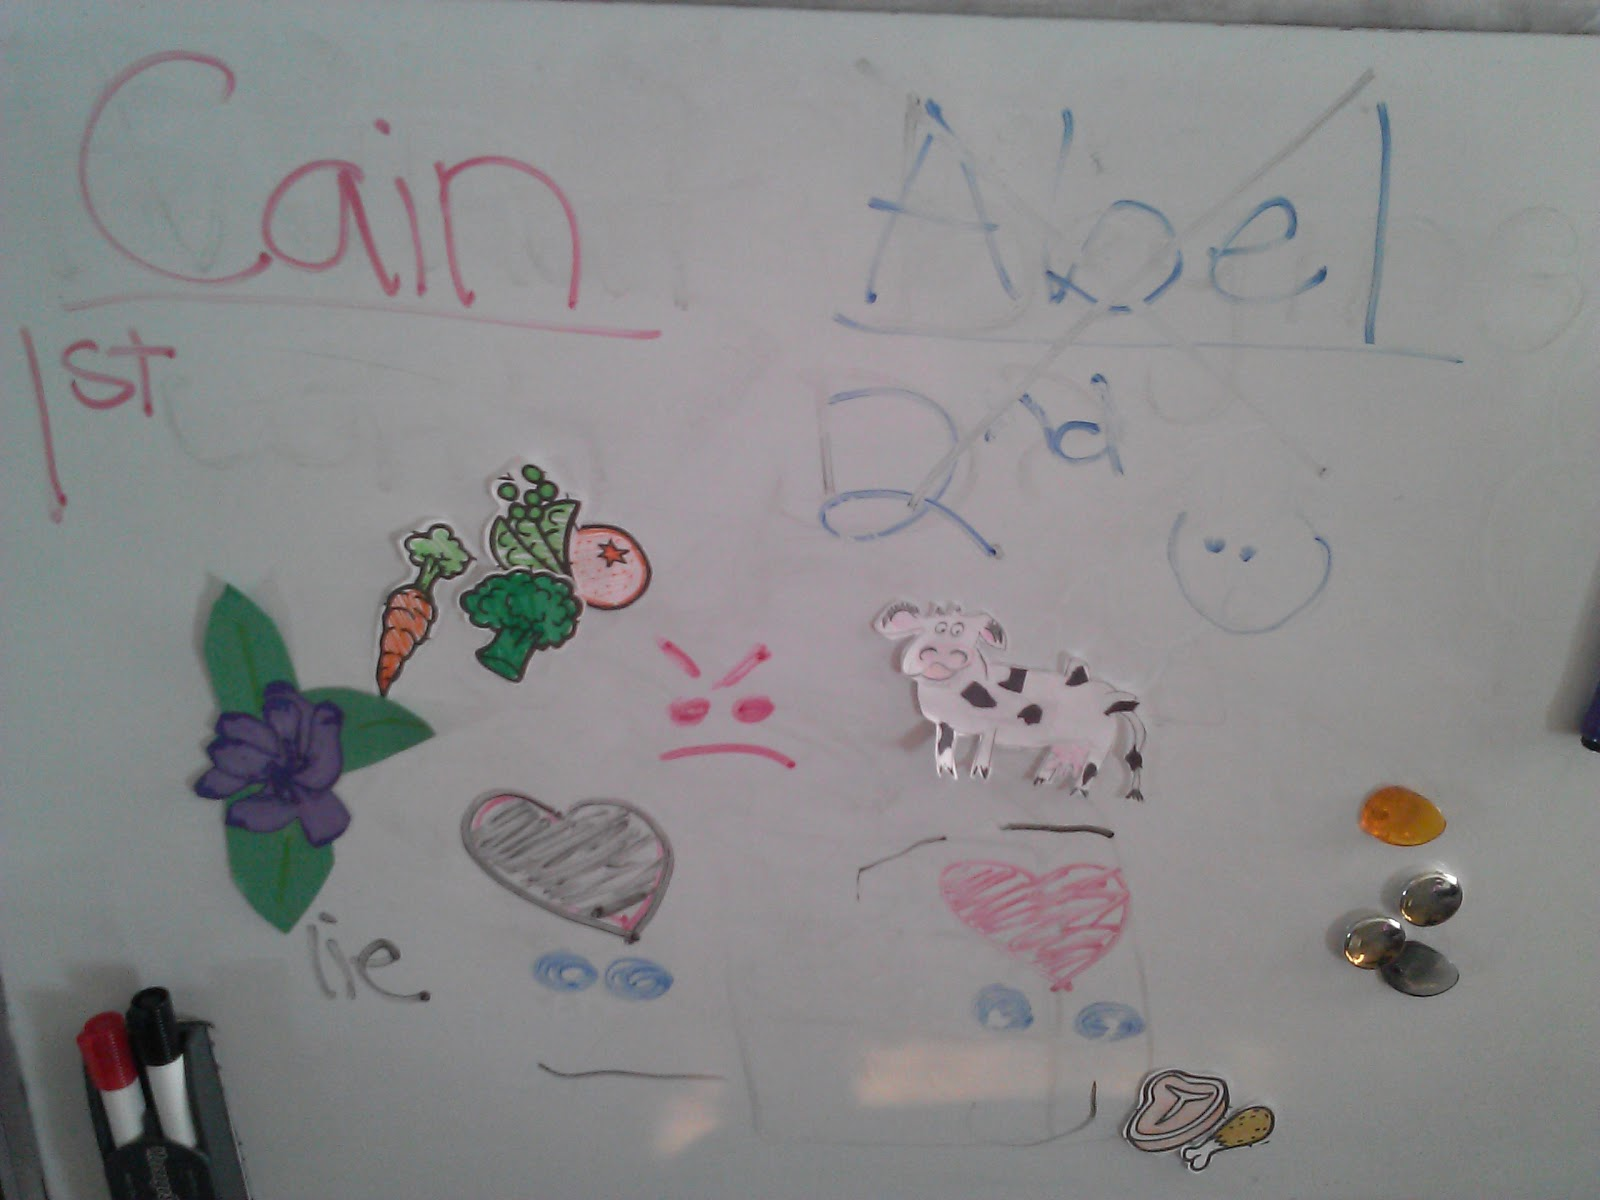 Cain and abel craft ideas - Cain And Abel